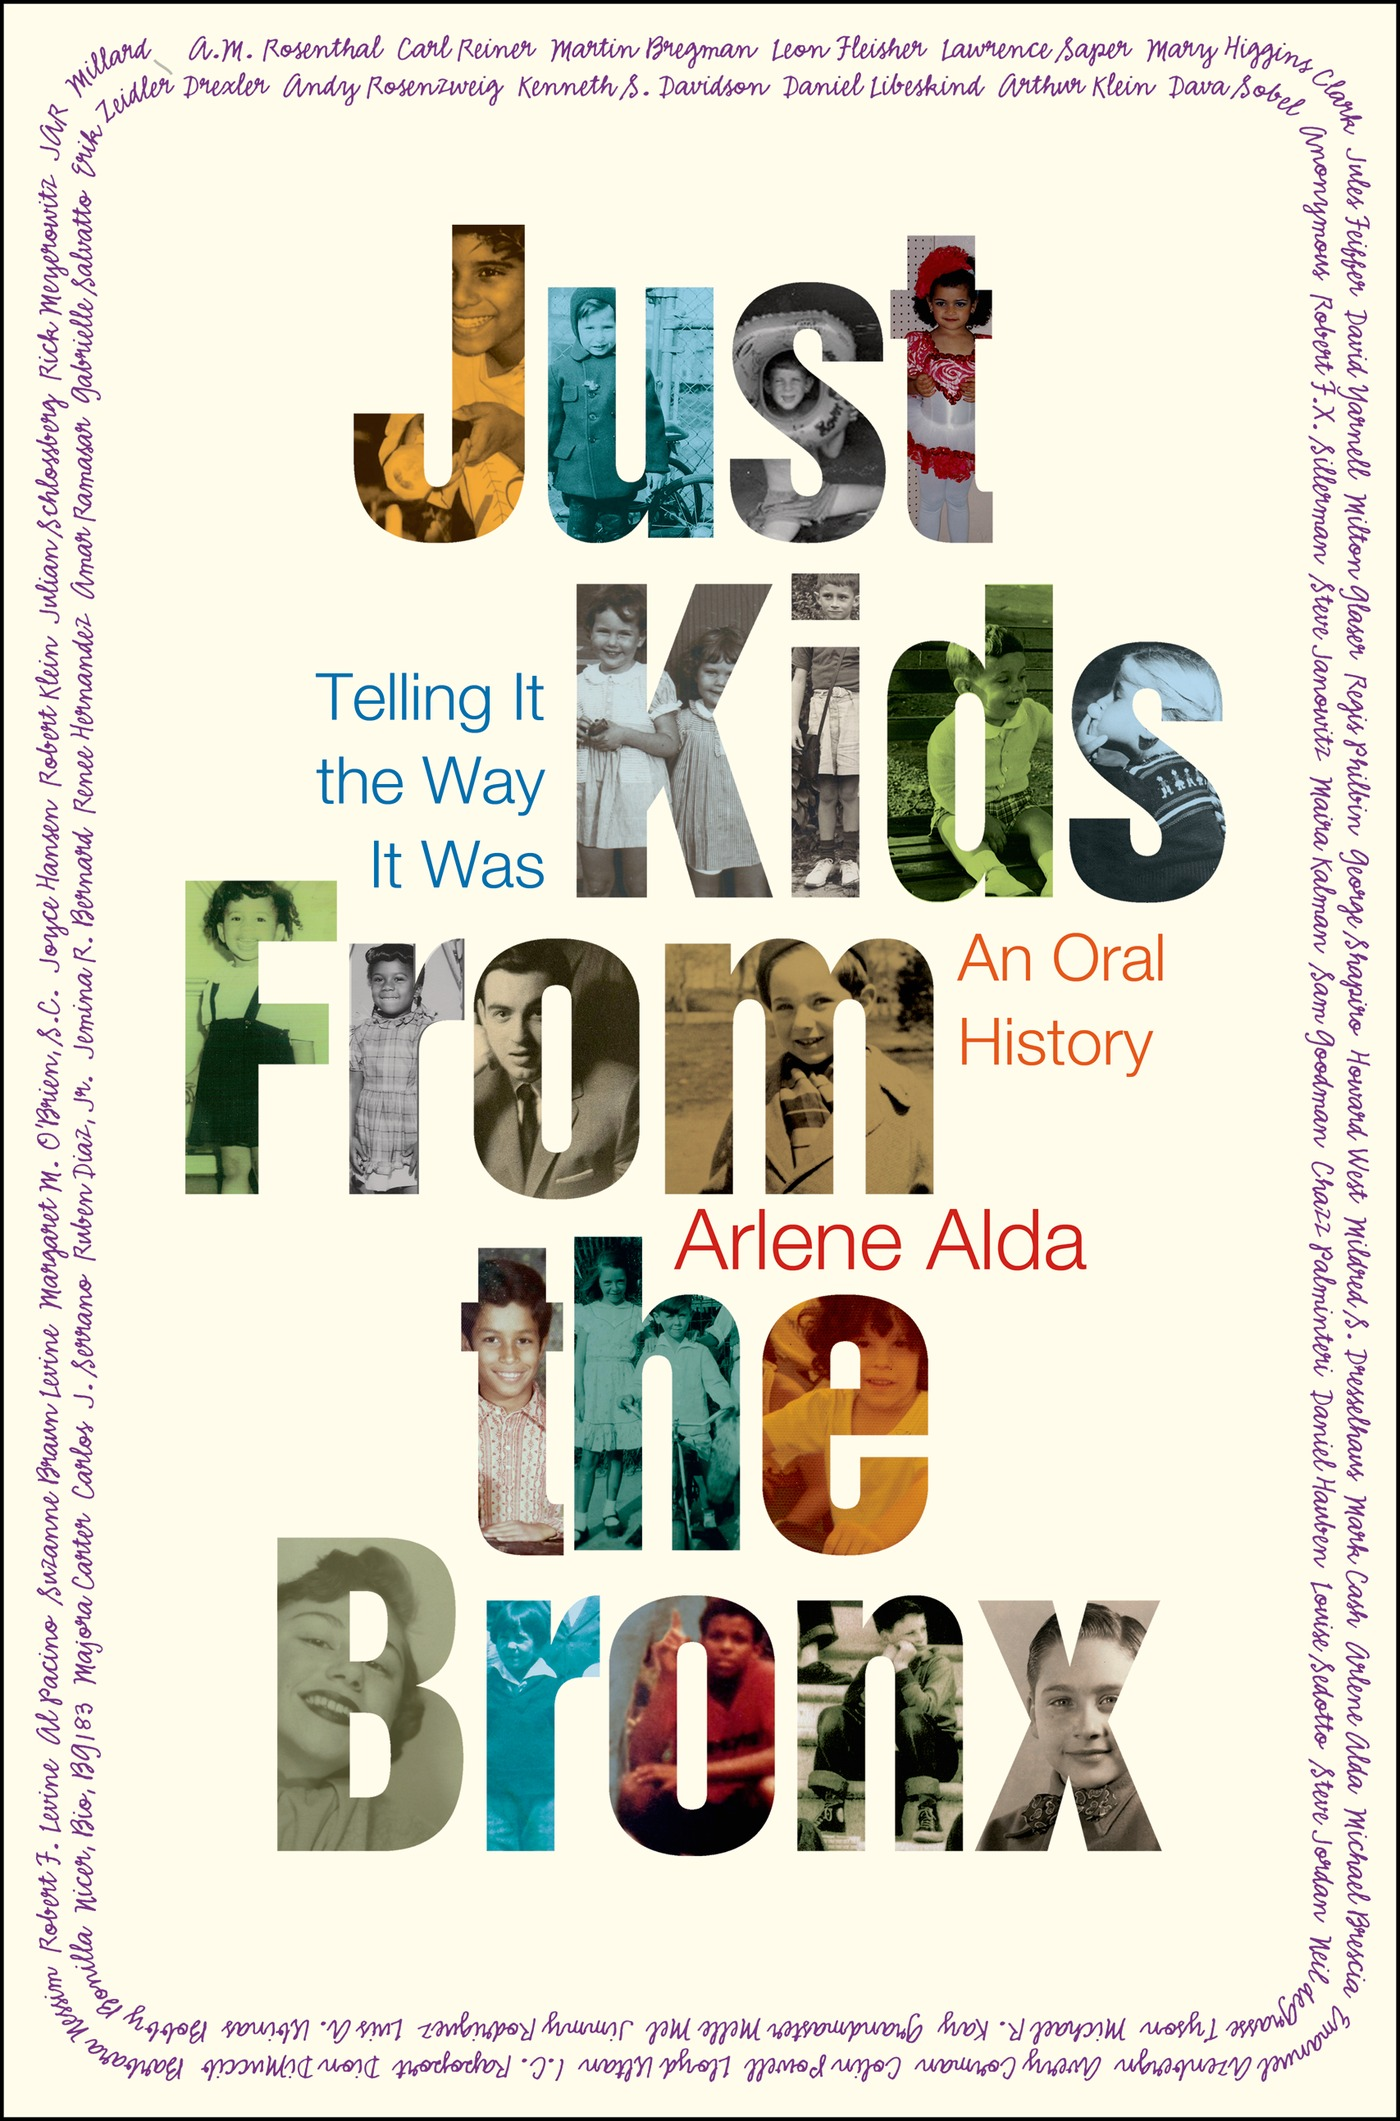 Just kids from the Bronx : telling it the way it was : an